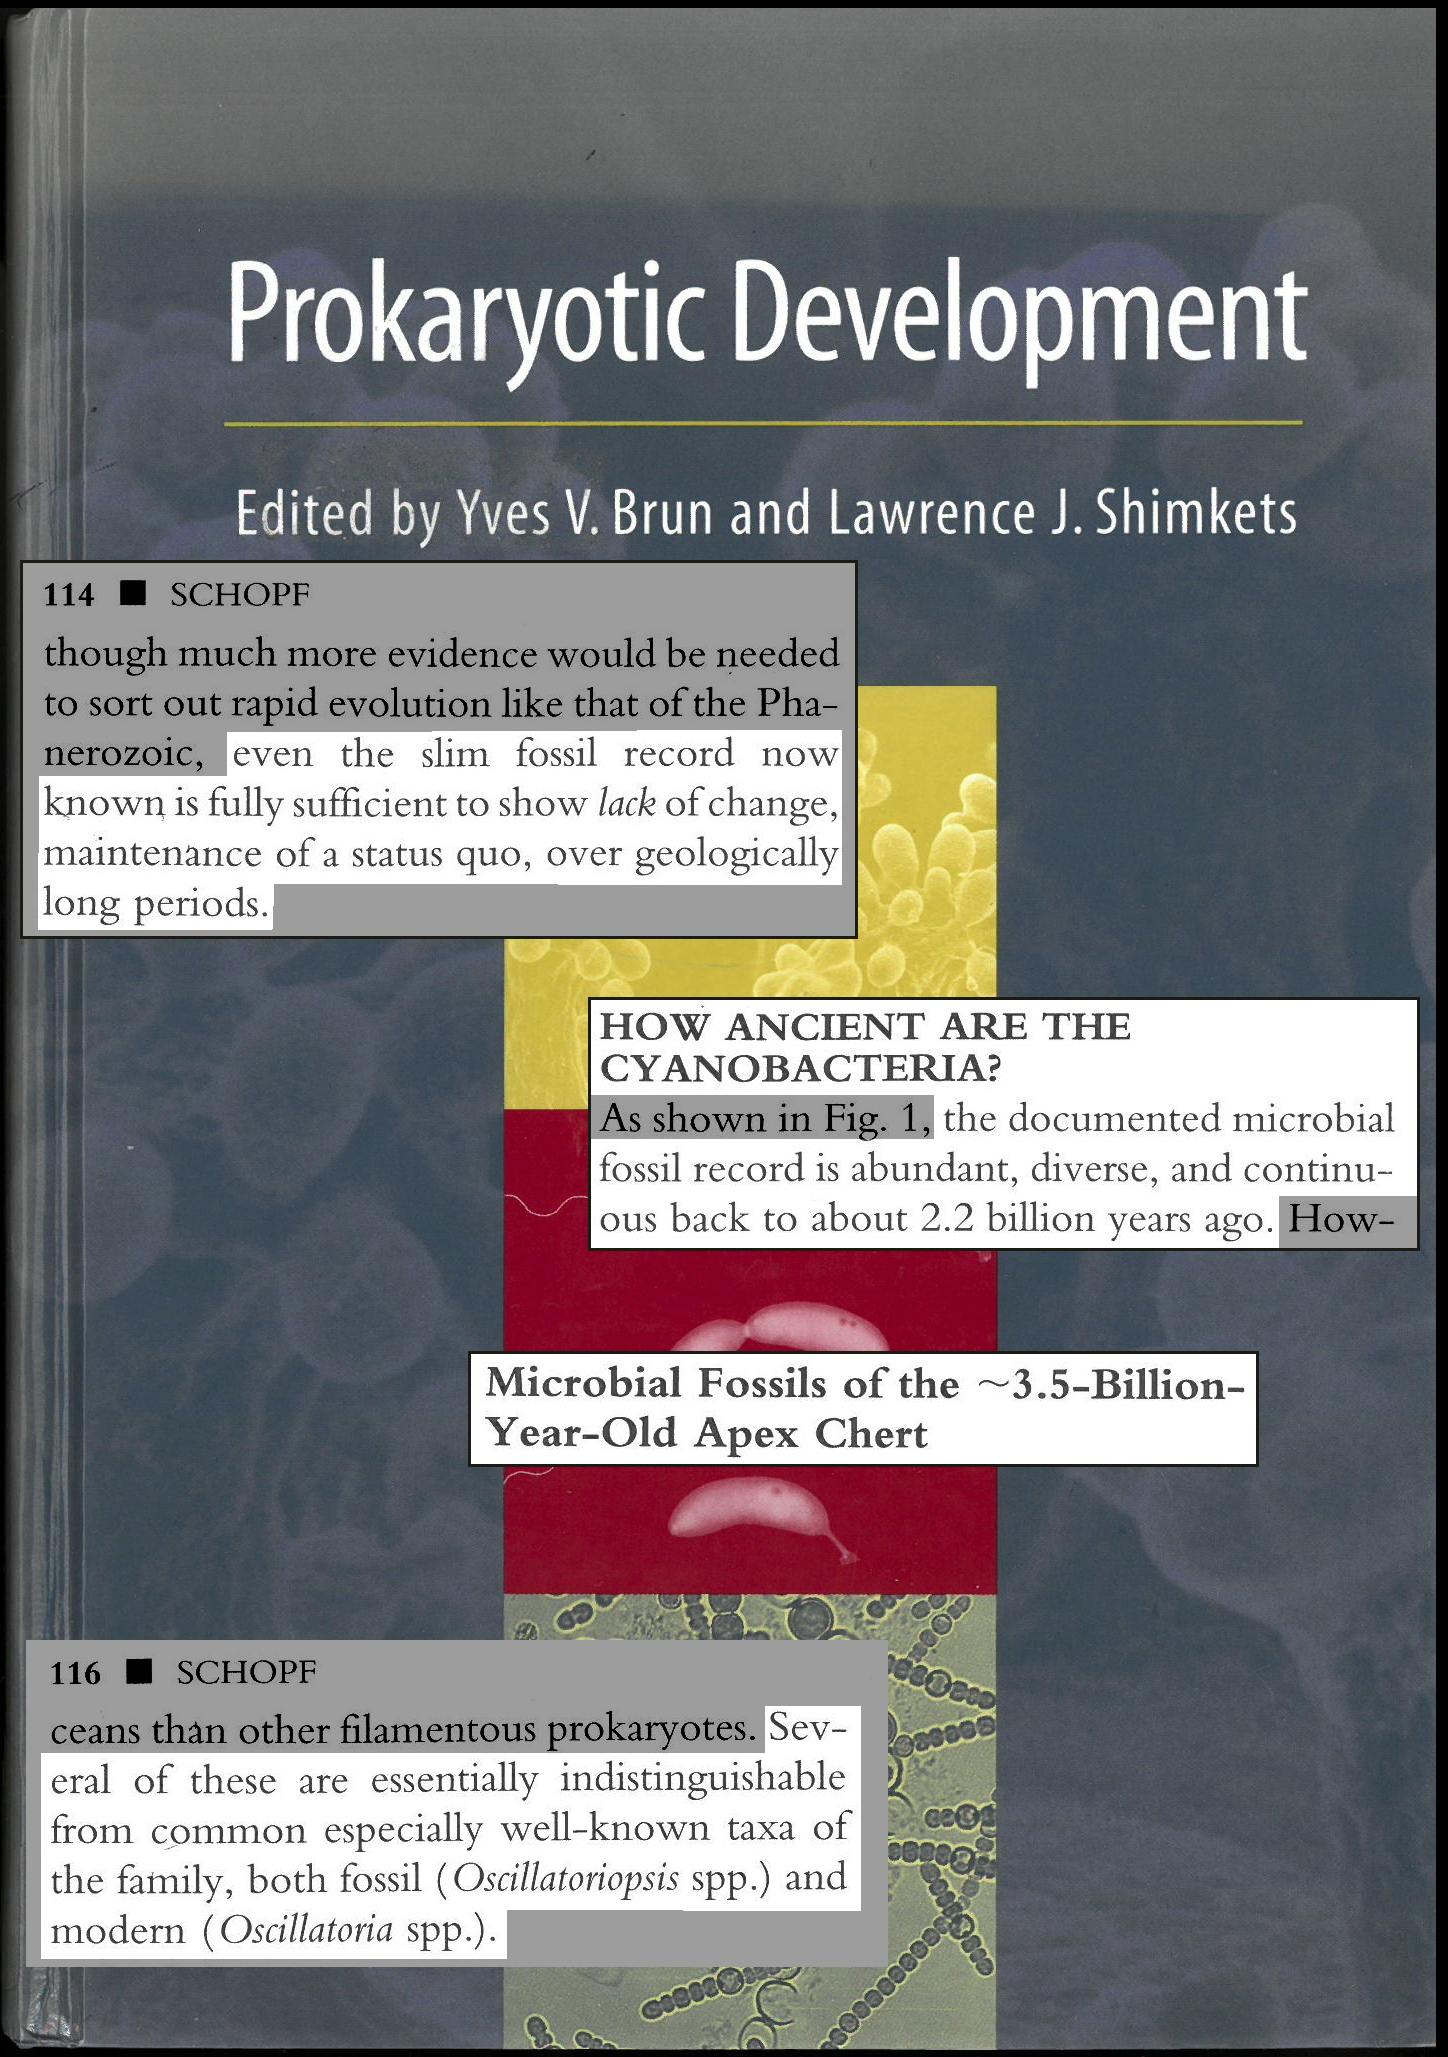 Excerpts from Prokaryotic Development